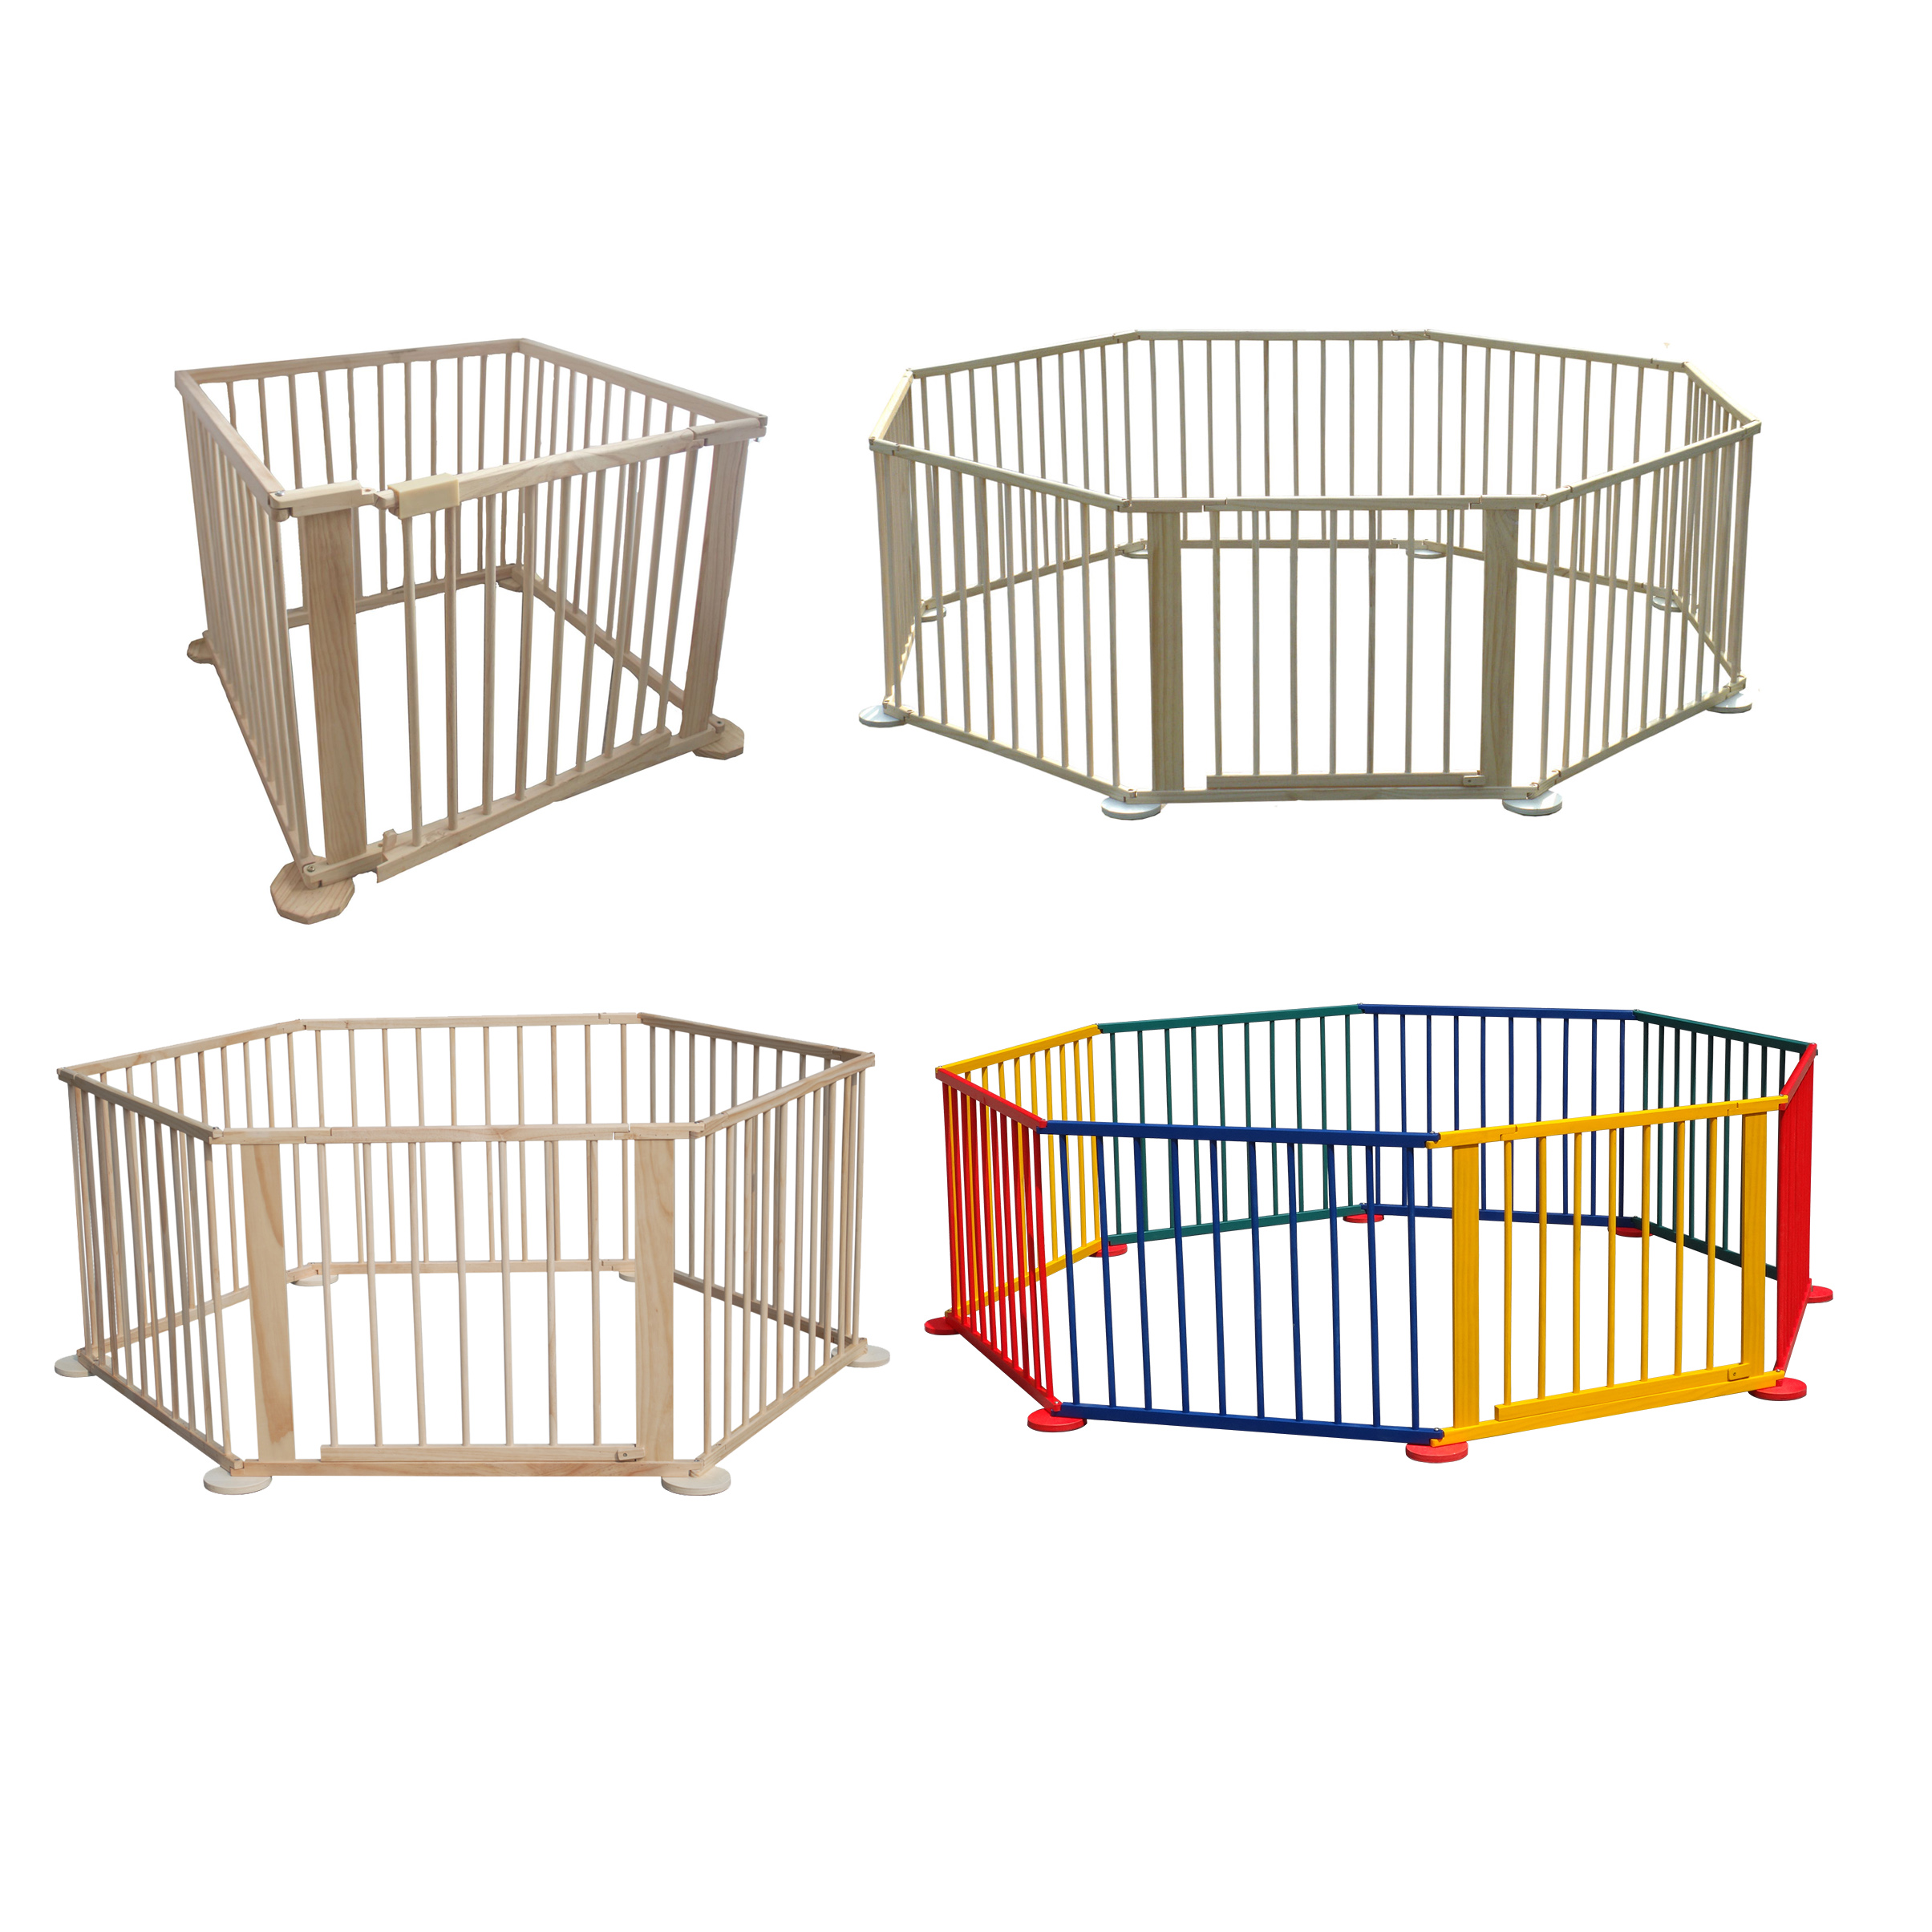 Baby Playpen Ebay Uk Baby Child Children Wooden Foldable Playpen Play Pen Room